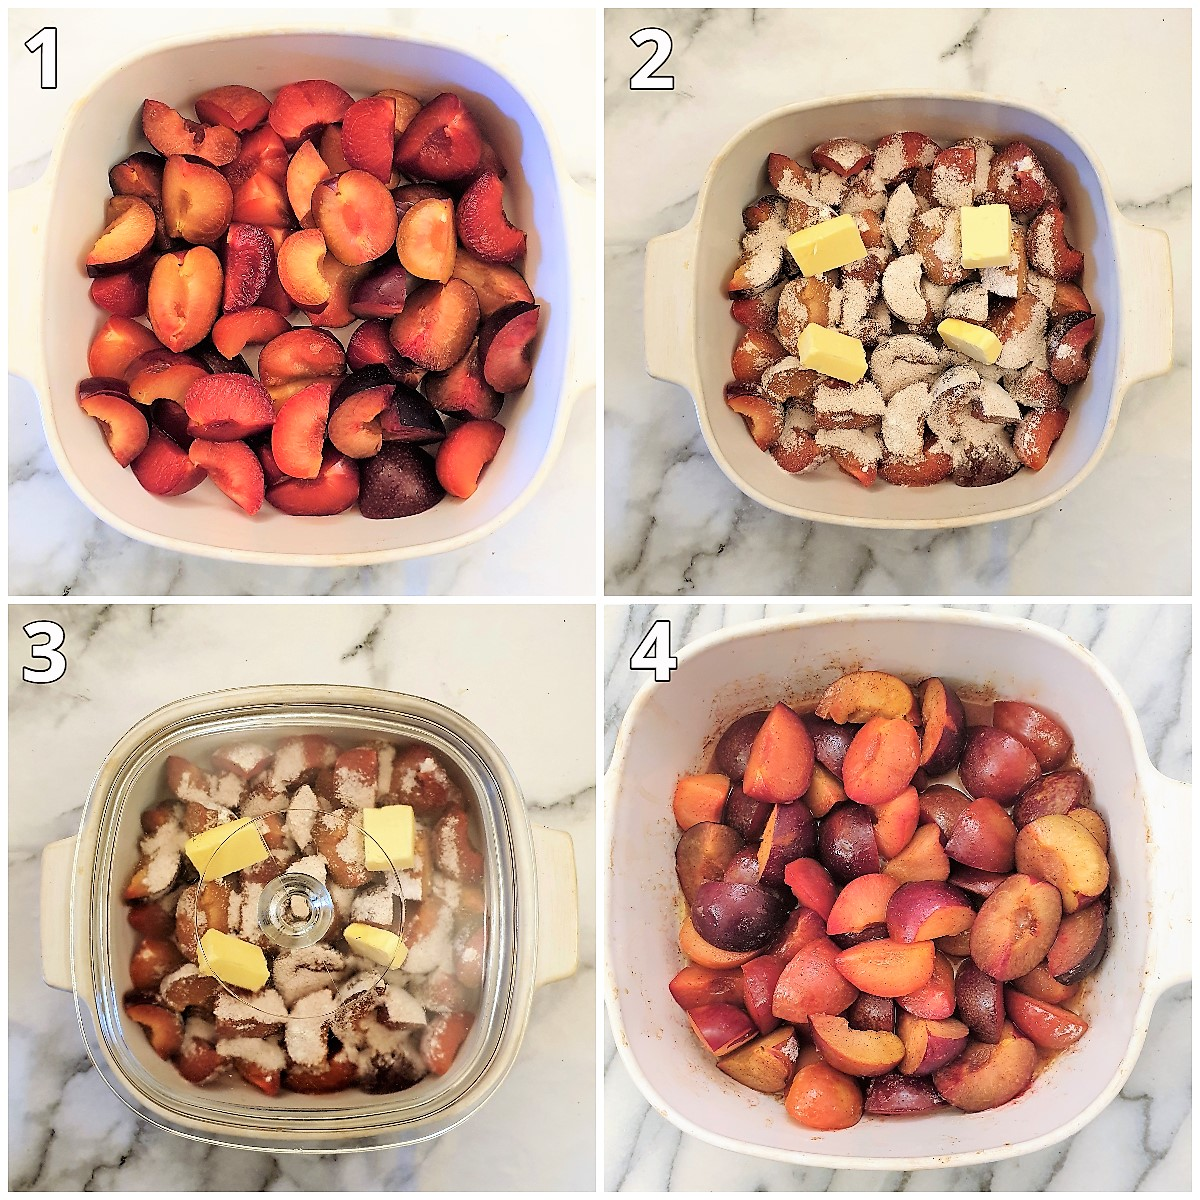 Steps for stewing the plums.